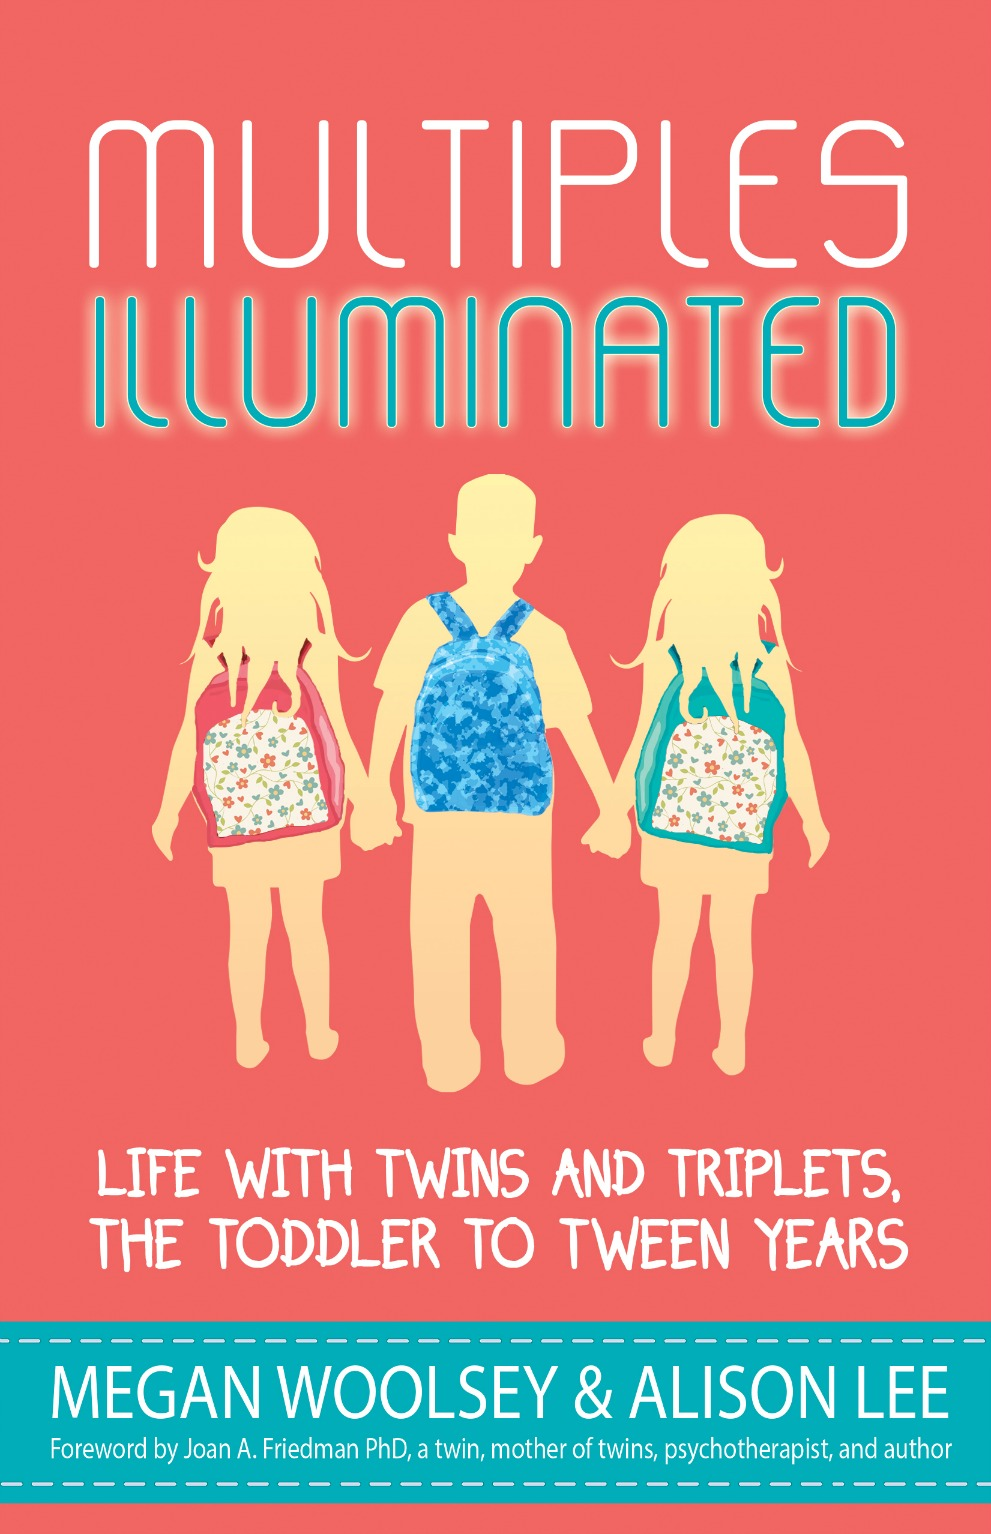 multiples-illuminated-toddler-to-tweens-book-cover-small